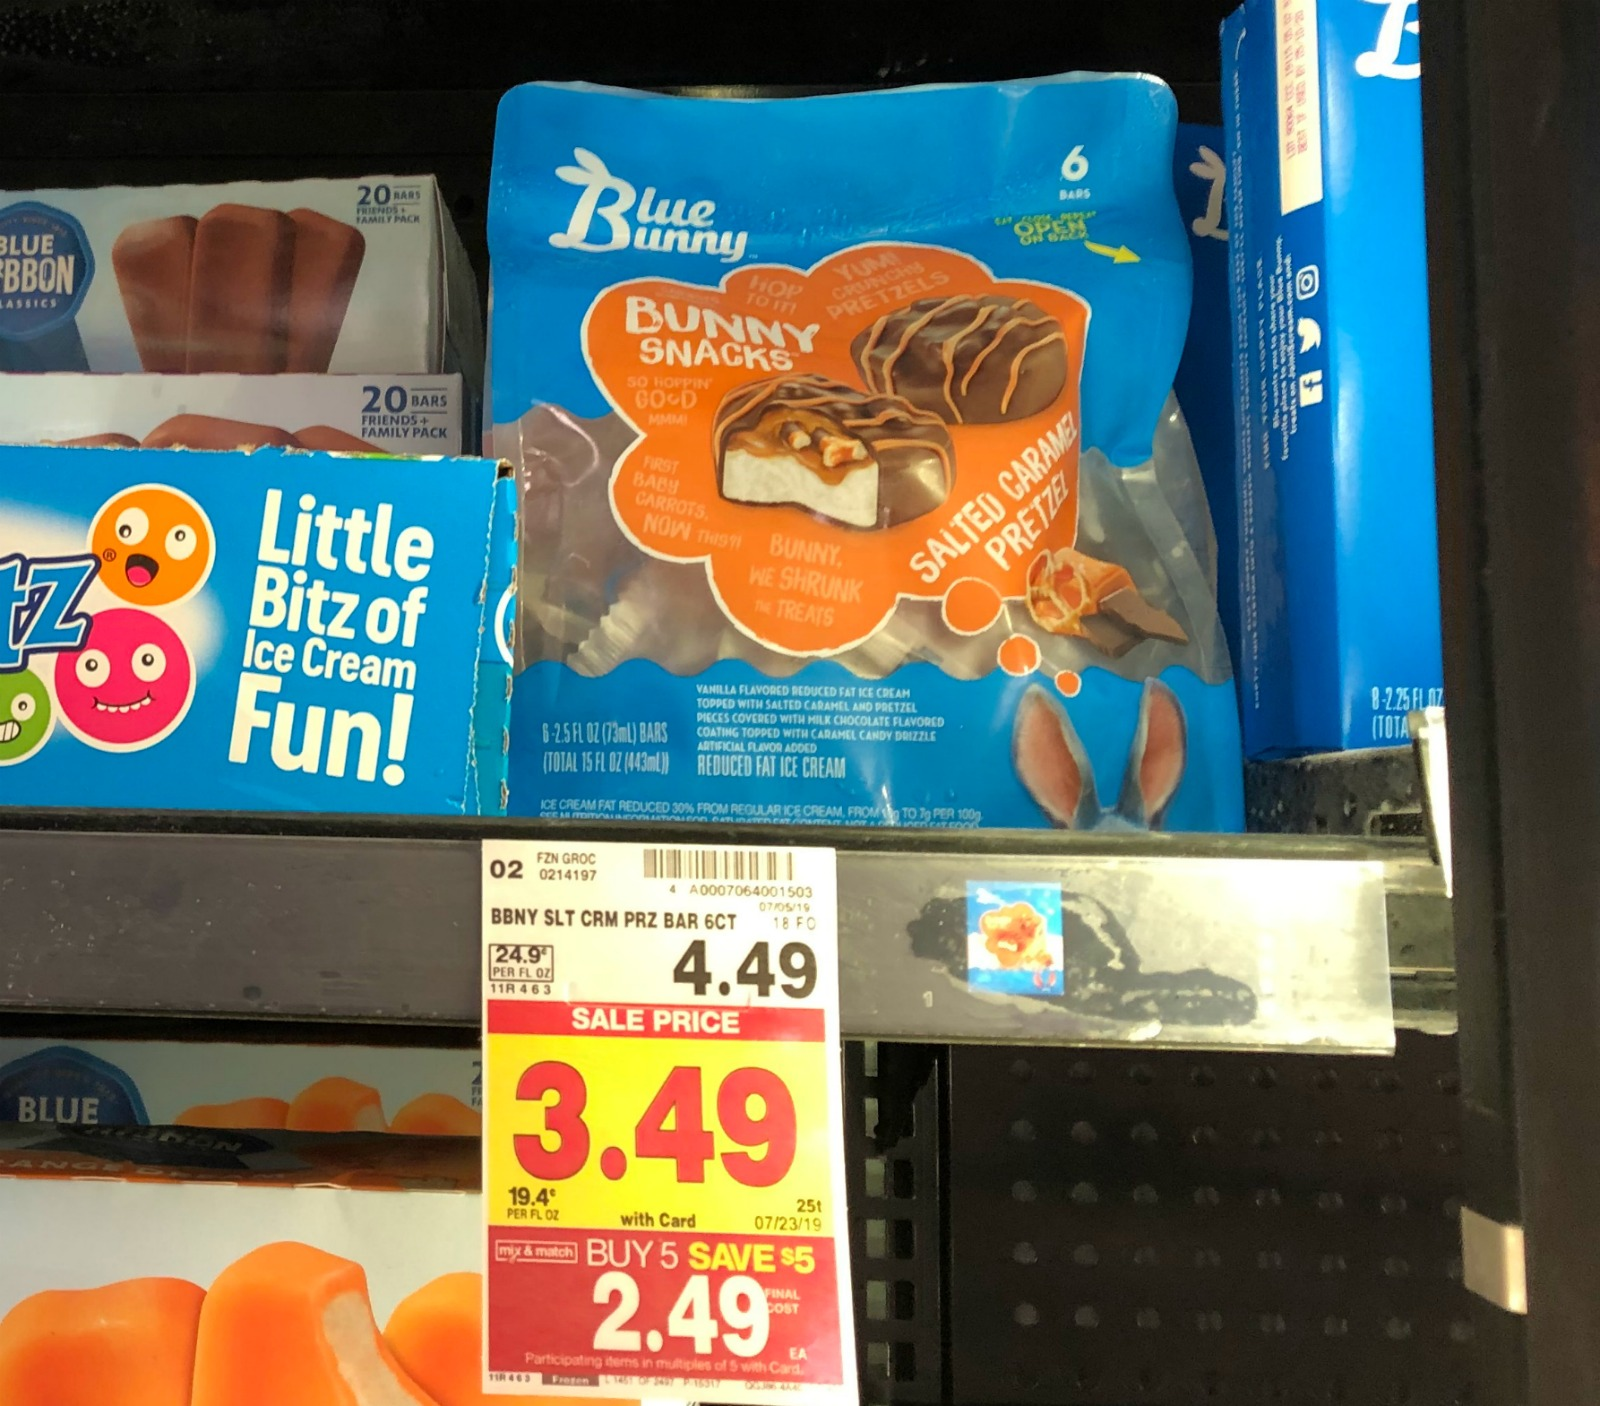 Blue Bunny Ice Cream Novelties As Low As 39¢ At Kroger 1